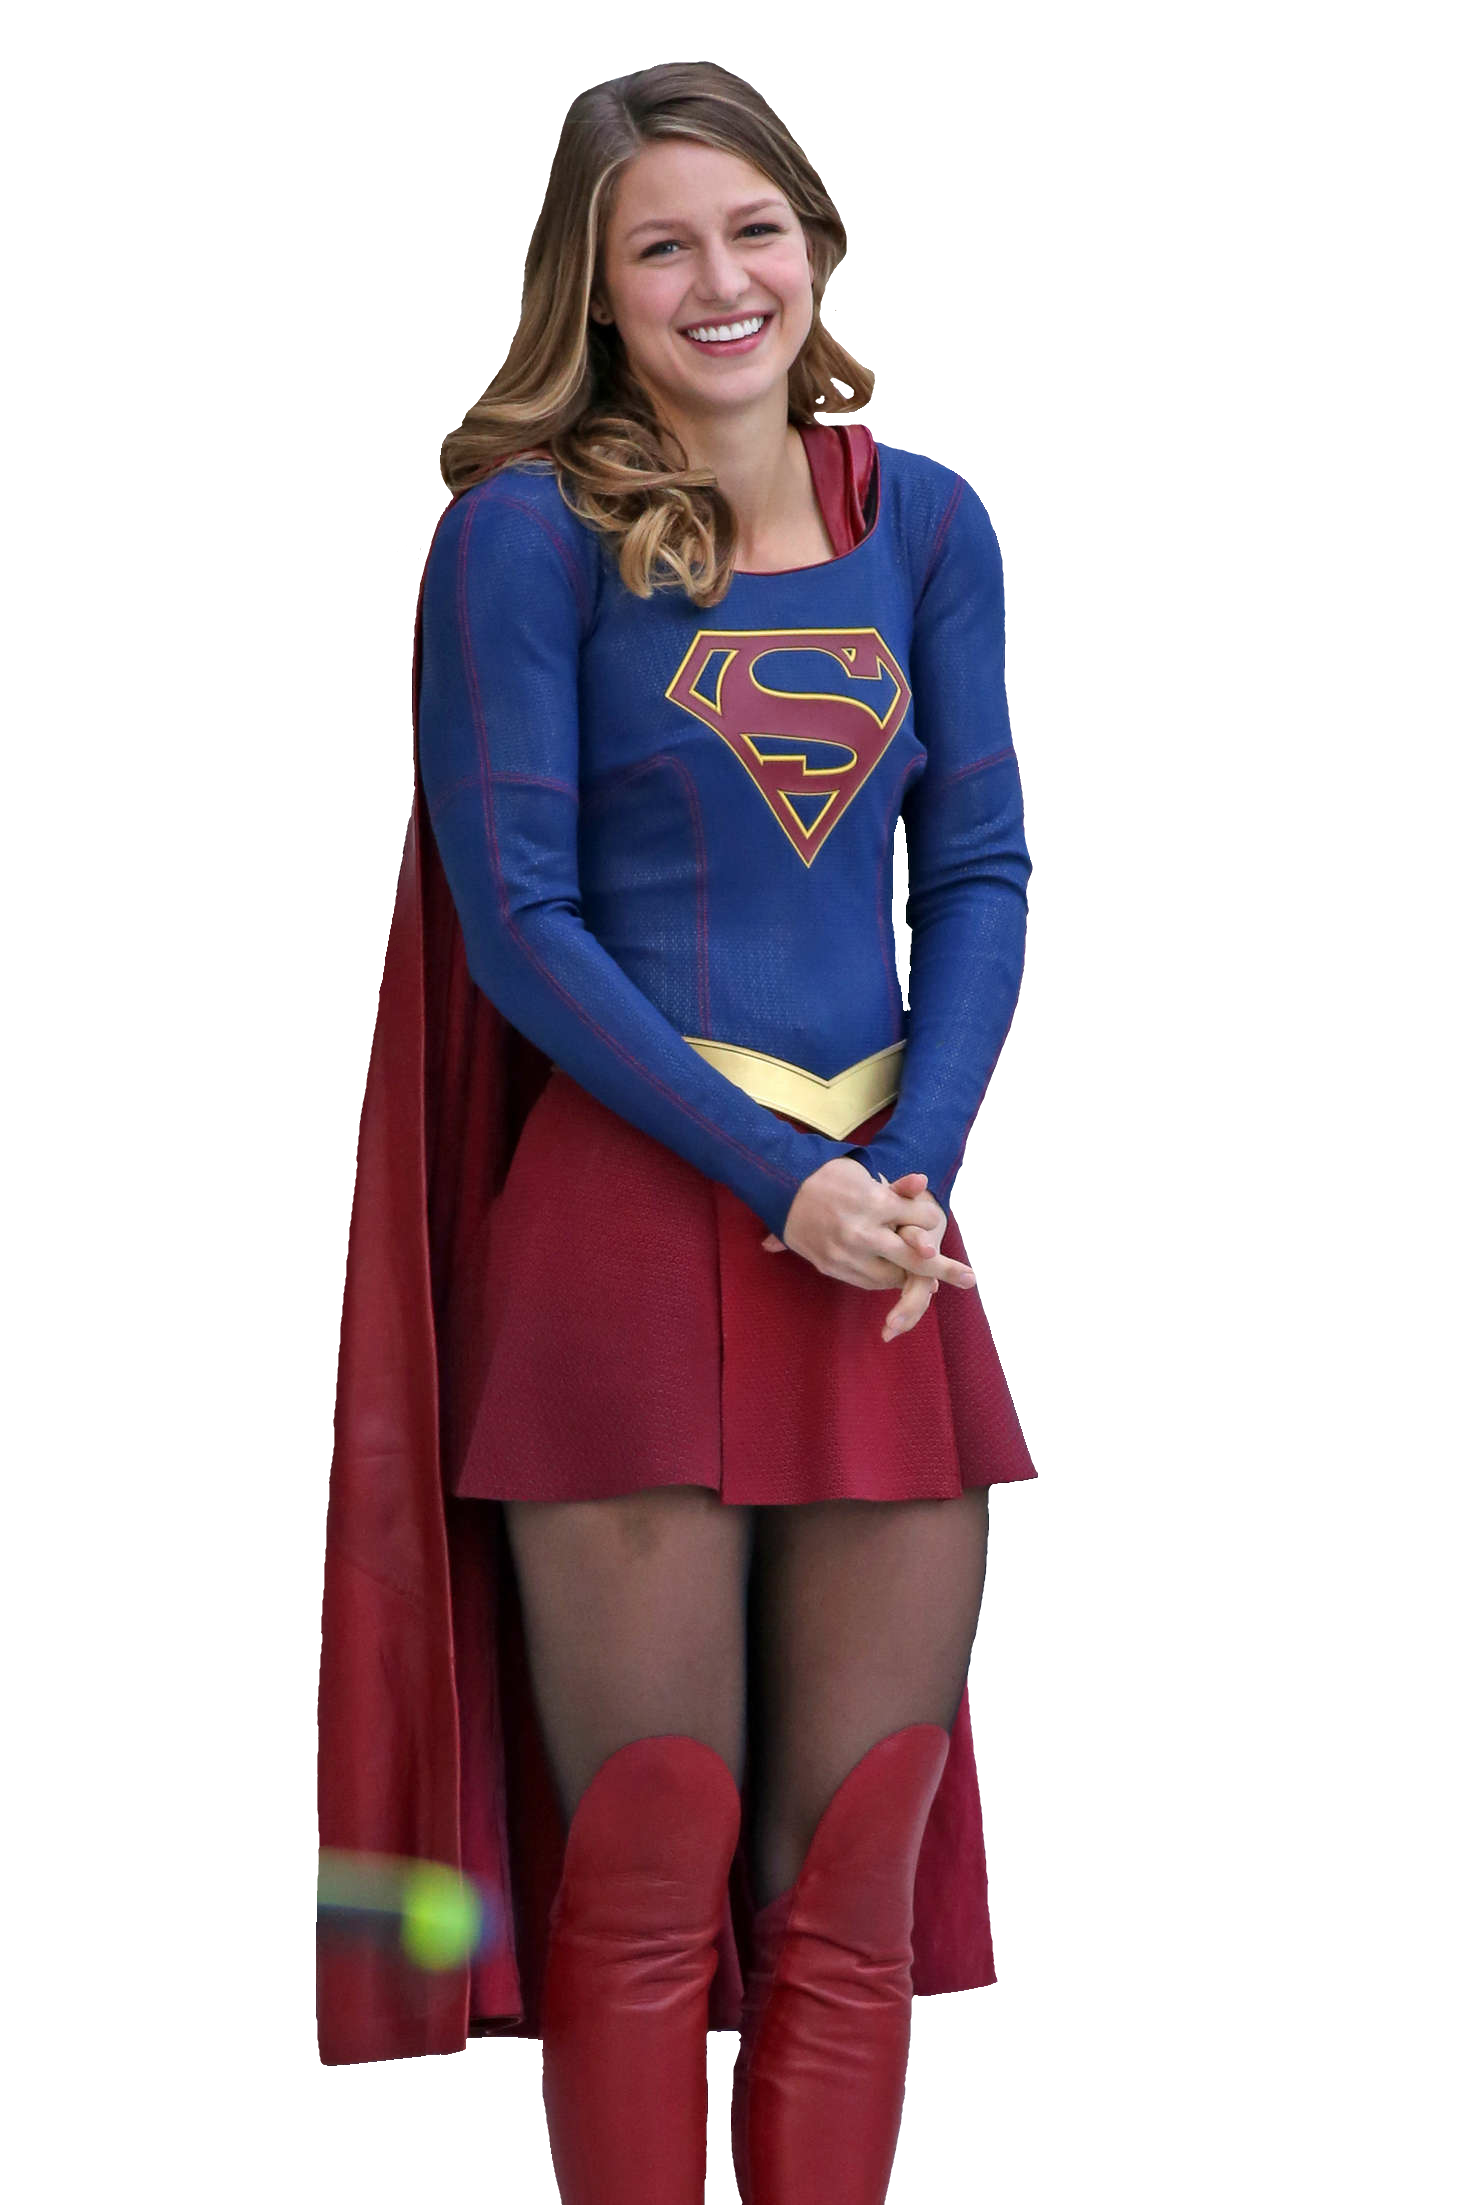 Supergirl - Transparent by Asthonx1 - Supergirl PNG